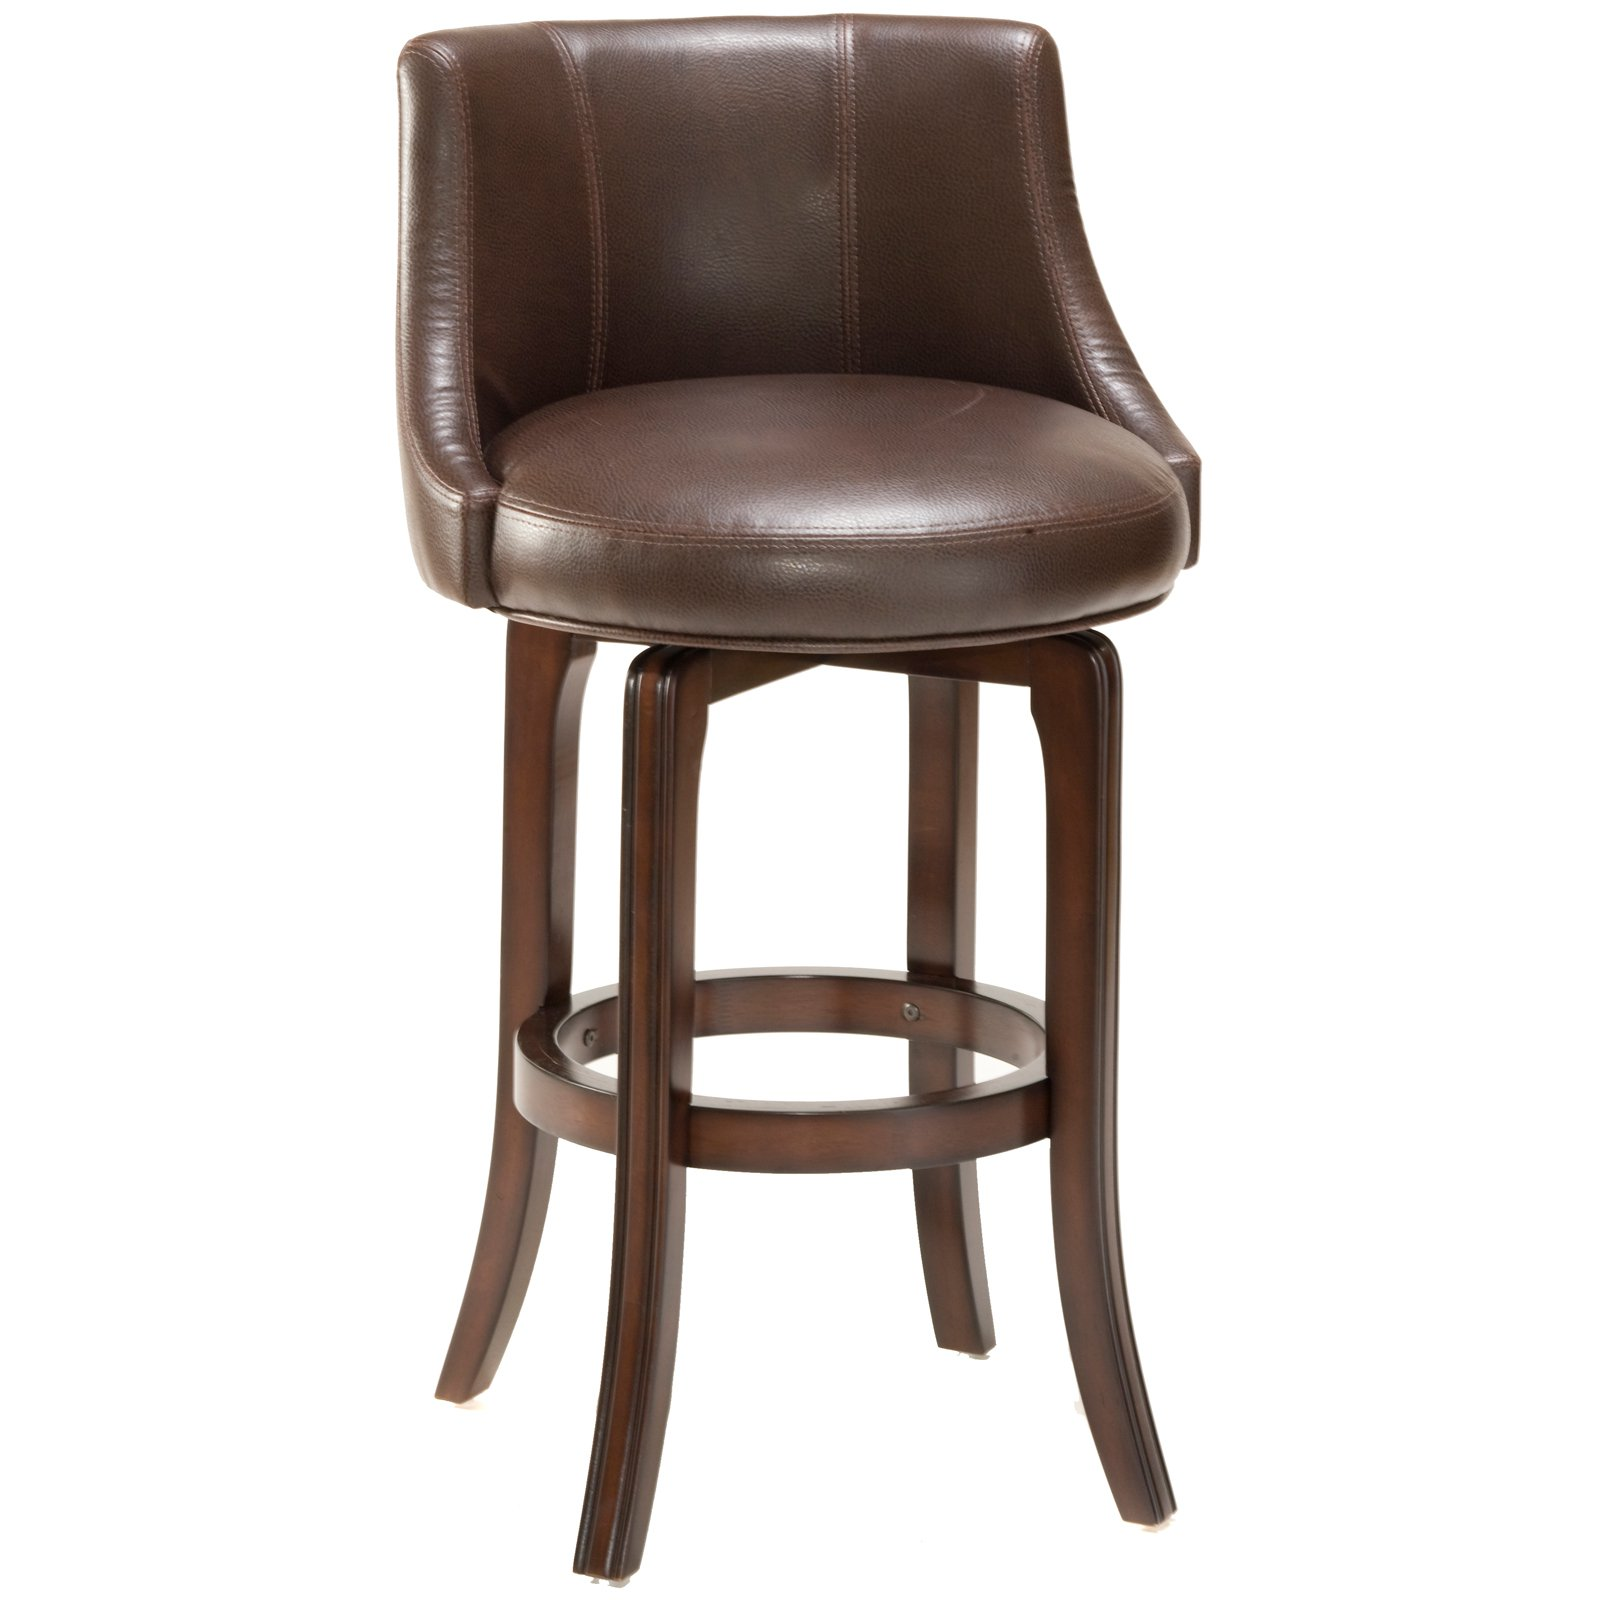 Hillsdale Napa Valley 30 in. Swivel Bar Stool Brown Leather Seat by Hillsdale Furniture